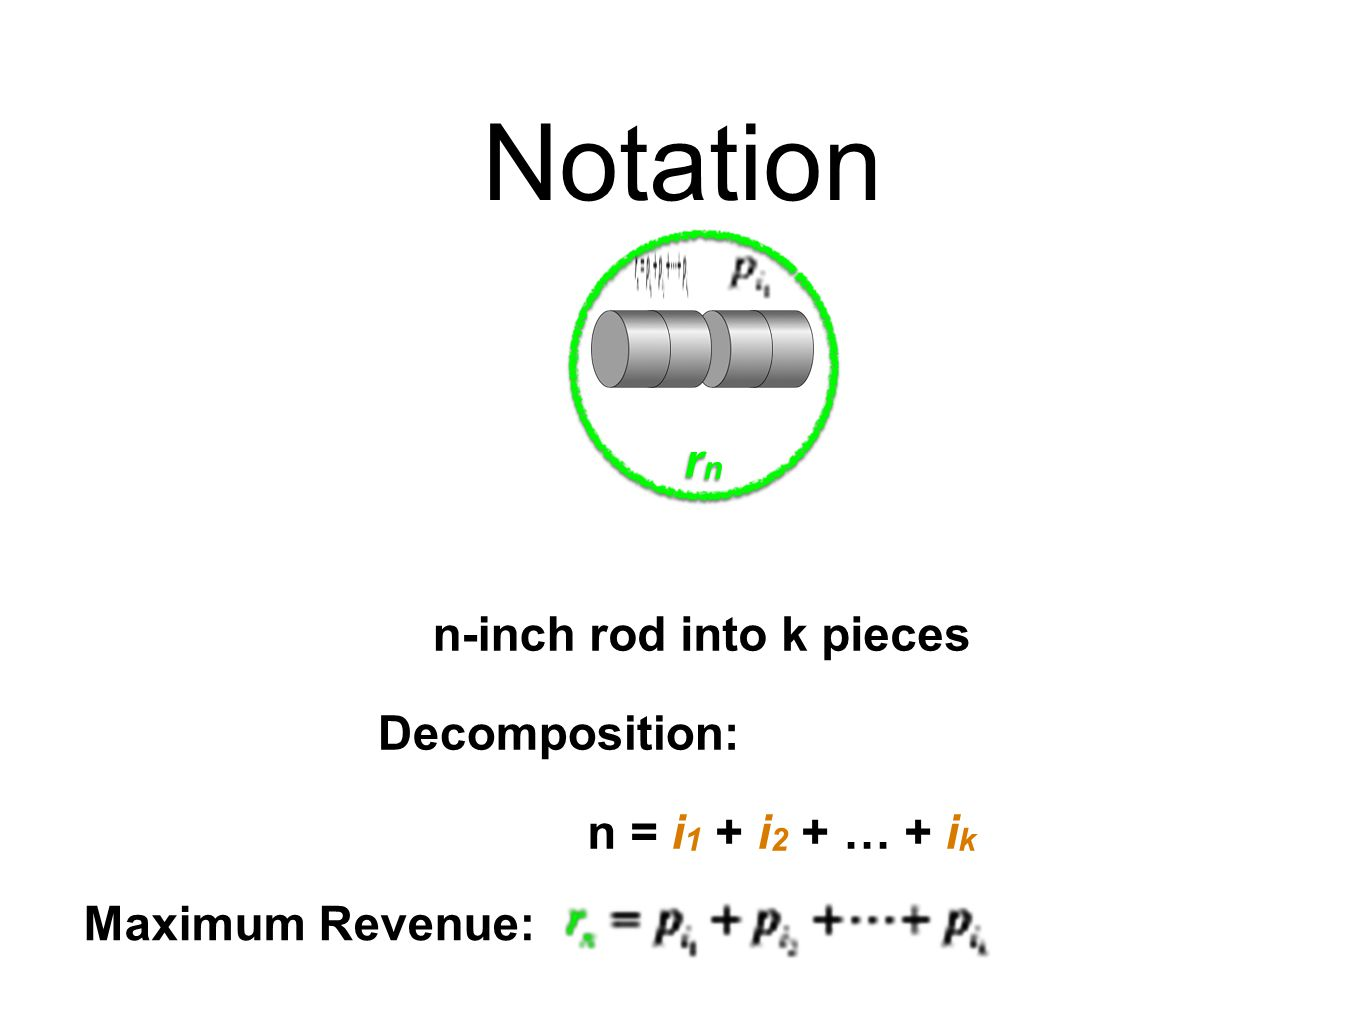 Notation rnrn rnrn rod into k piecesn-inch Decomposition: n = i 1 + i 2 + … + i k Maximum Revenue: